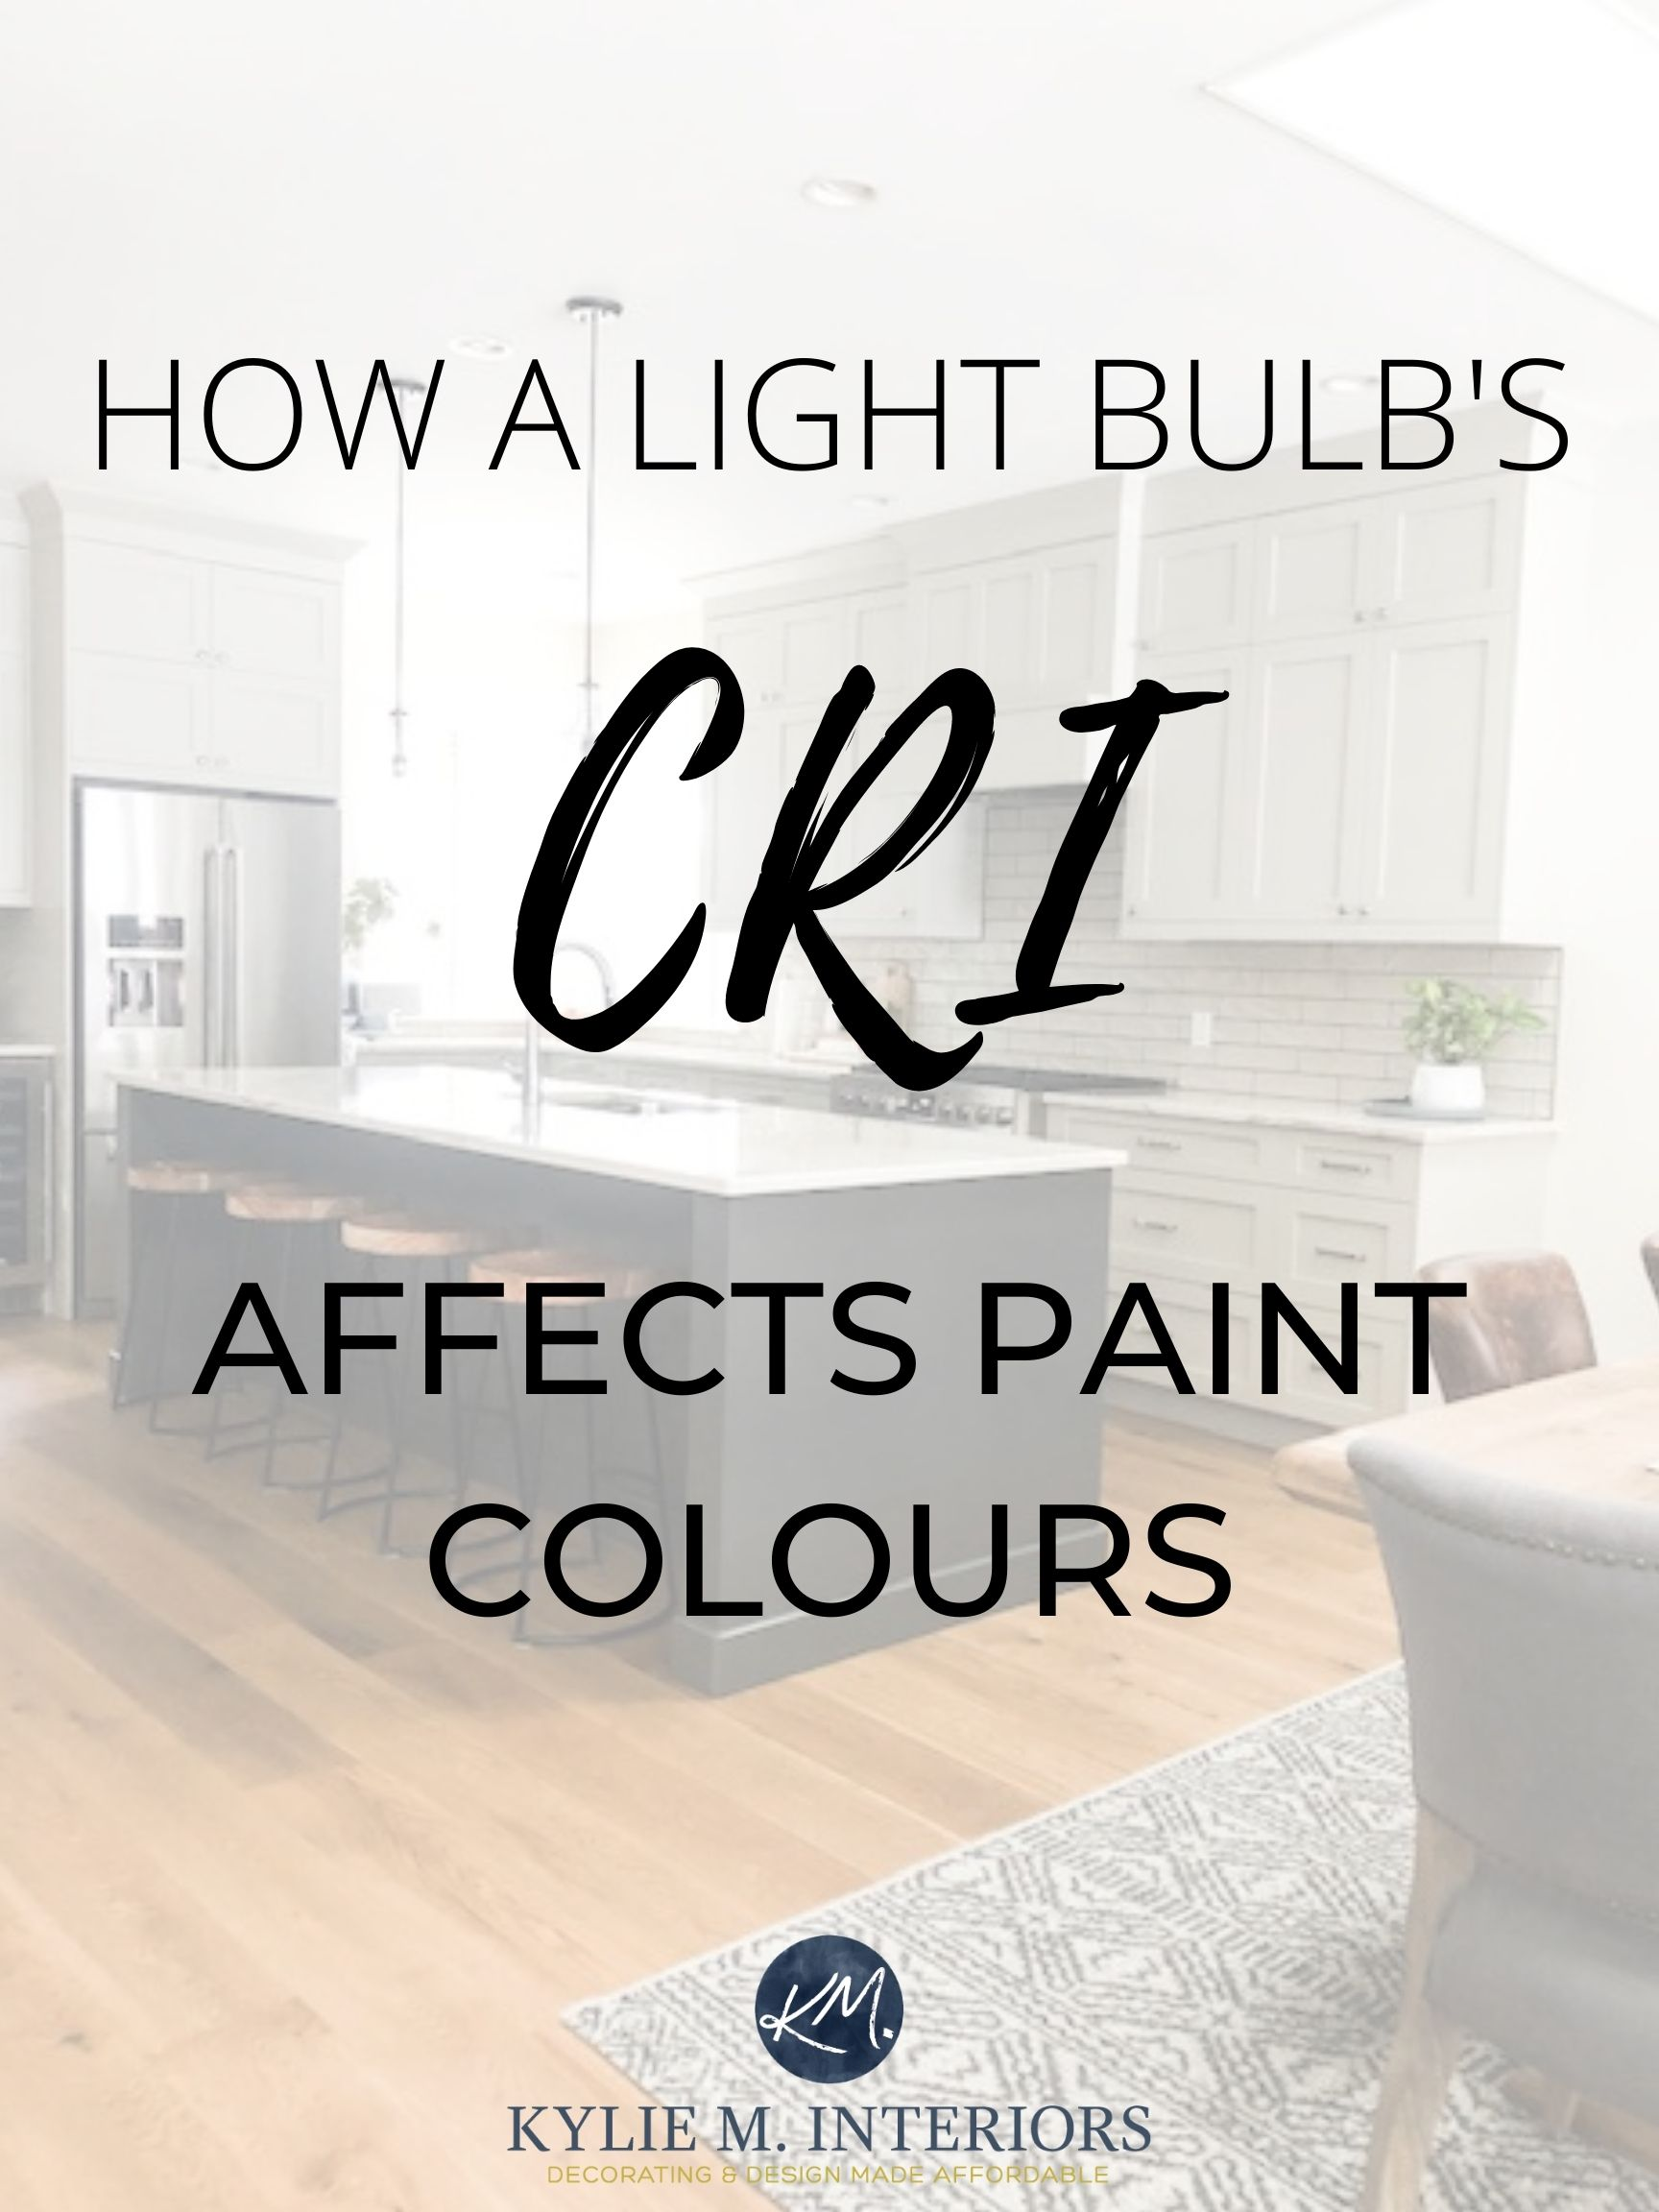 How CRI and light bulb temperatures affect paint colours. Kylie M Interiors